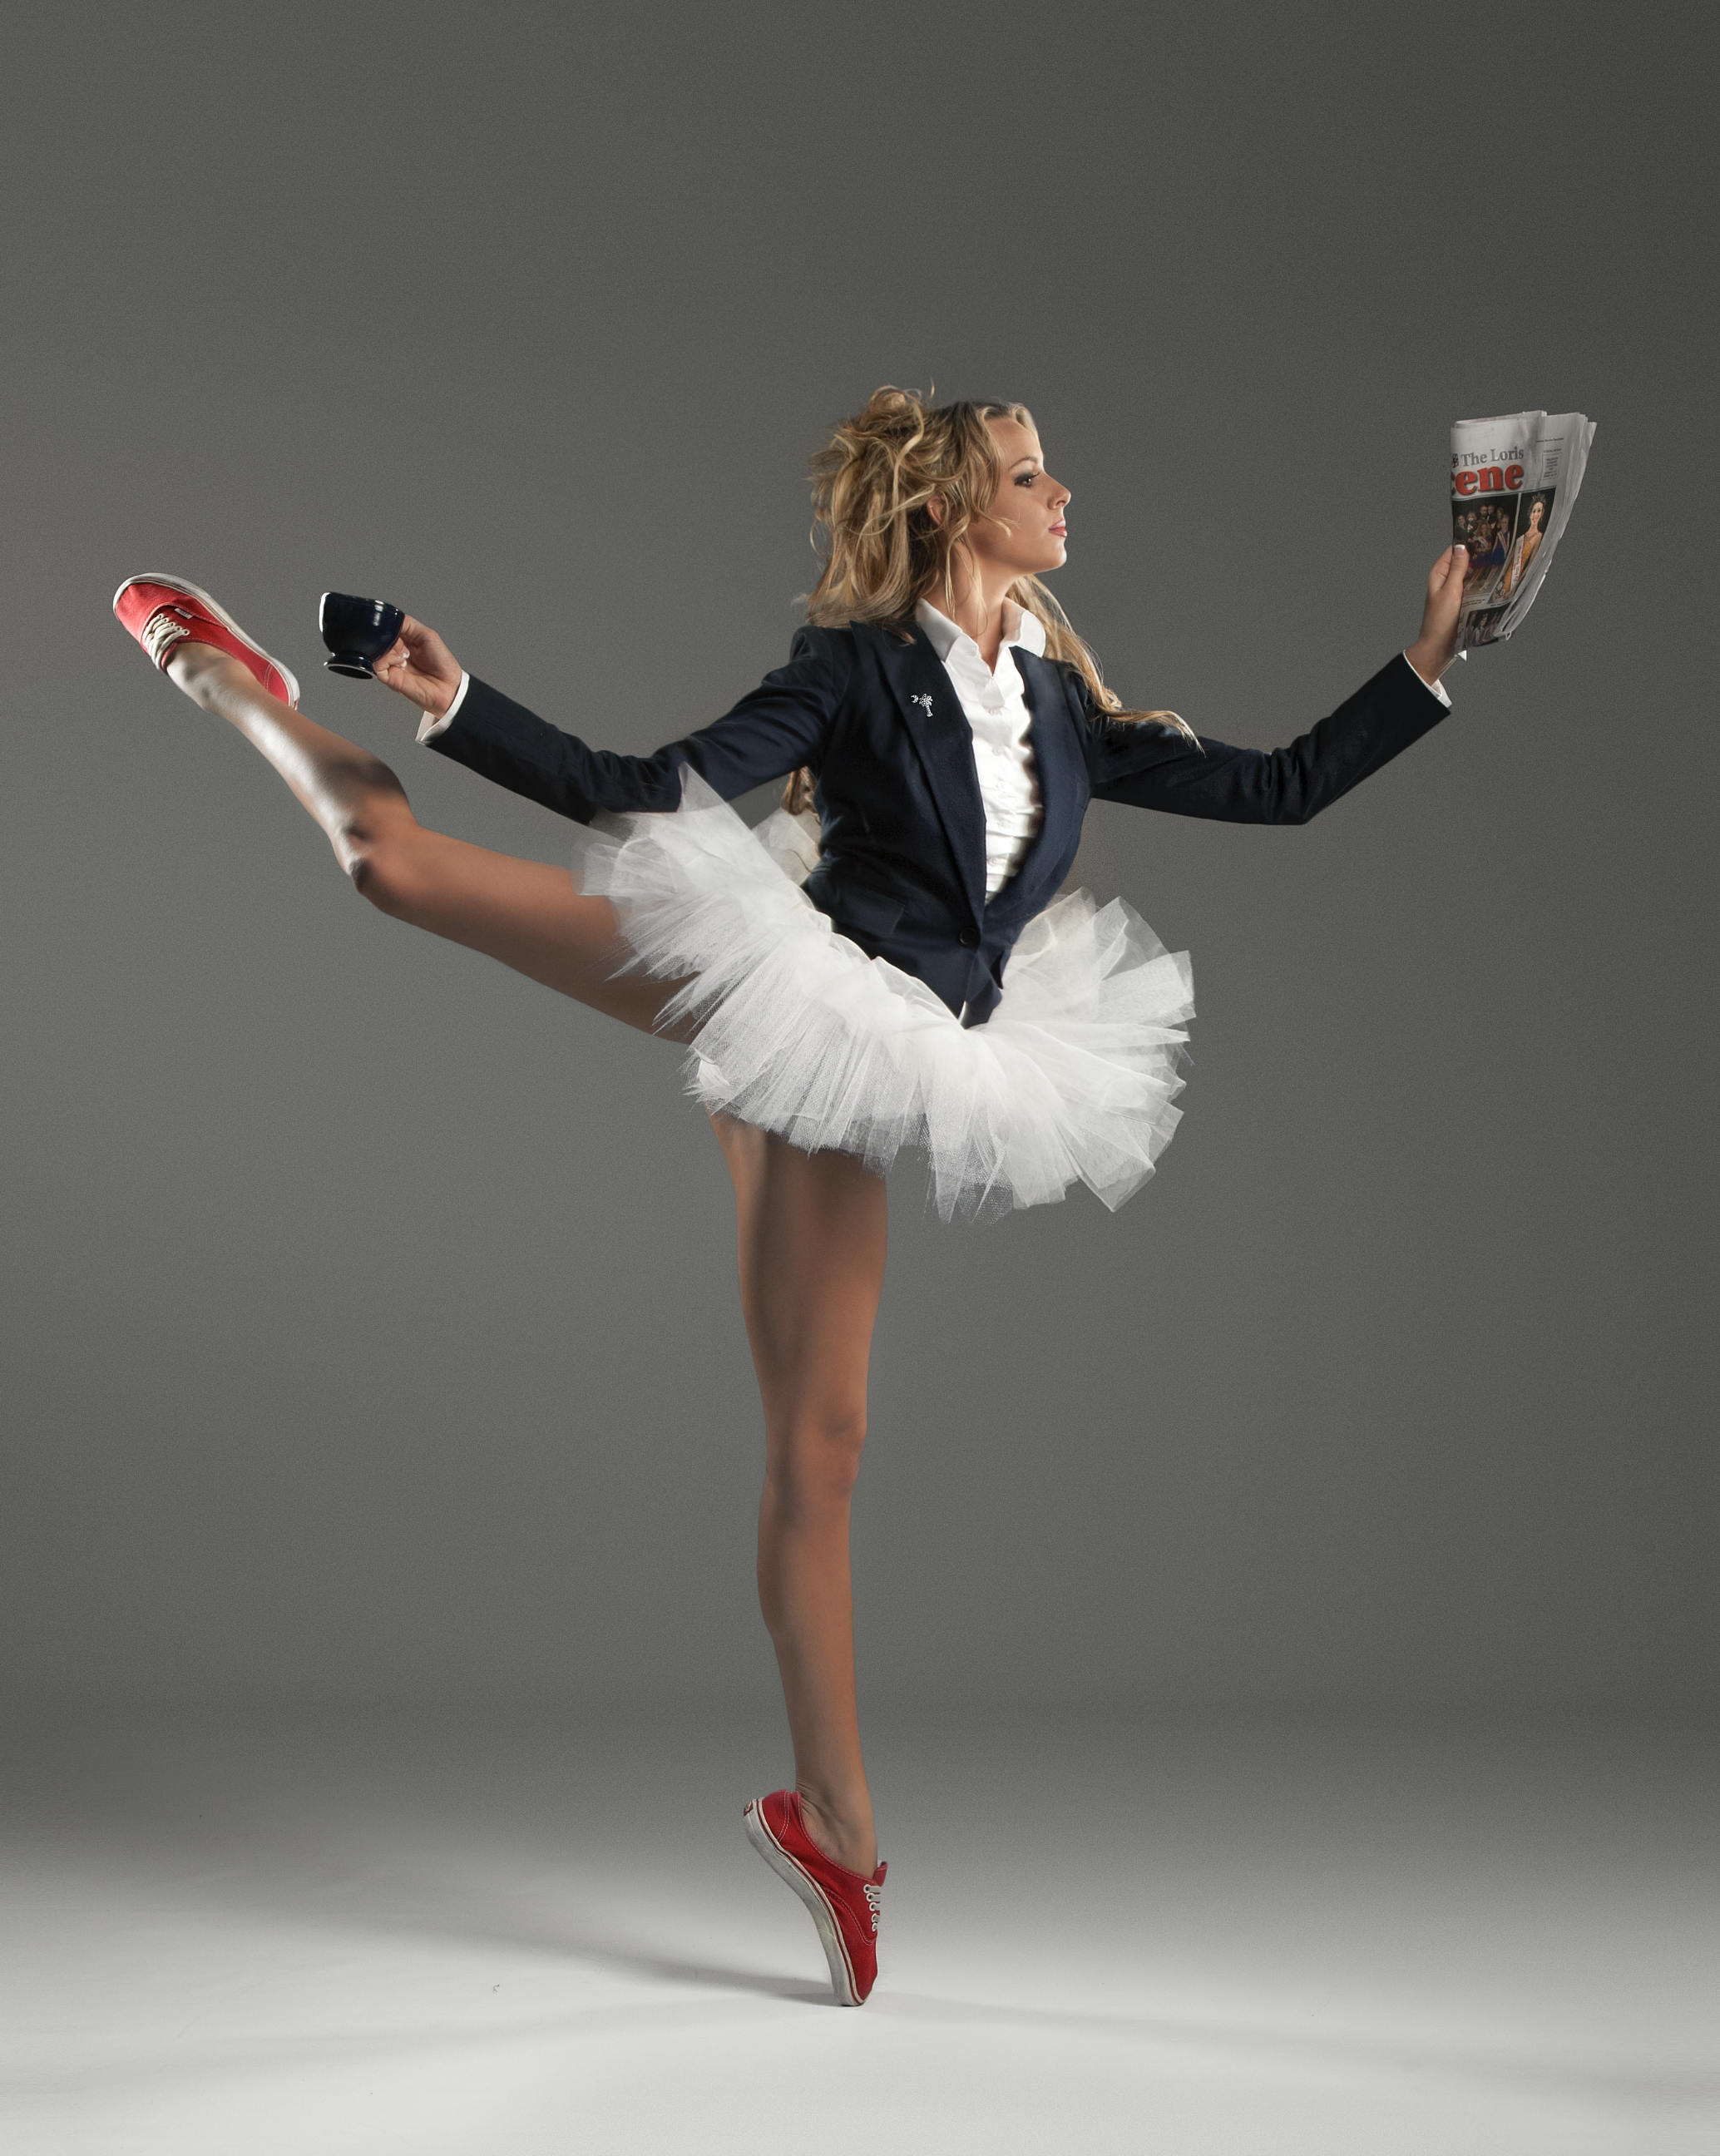 dance+ballet+lifestyle+photography